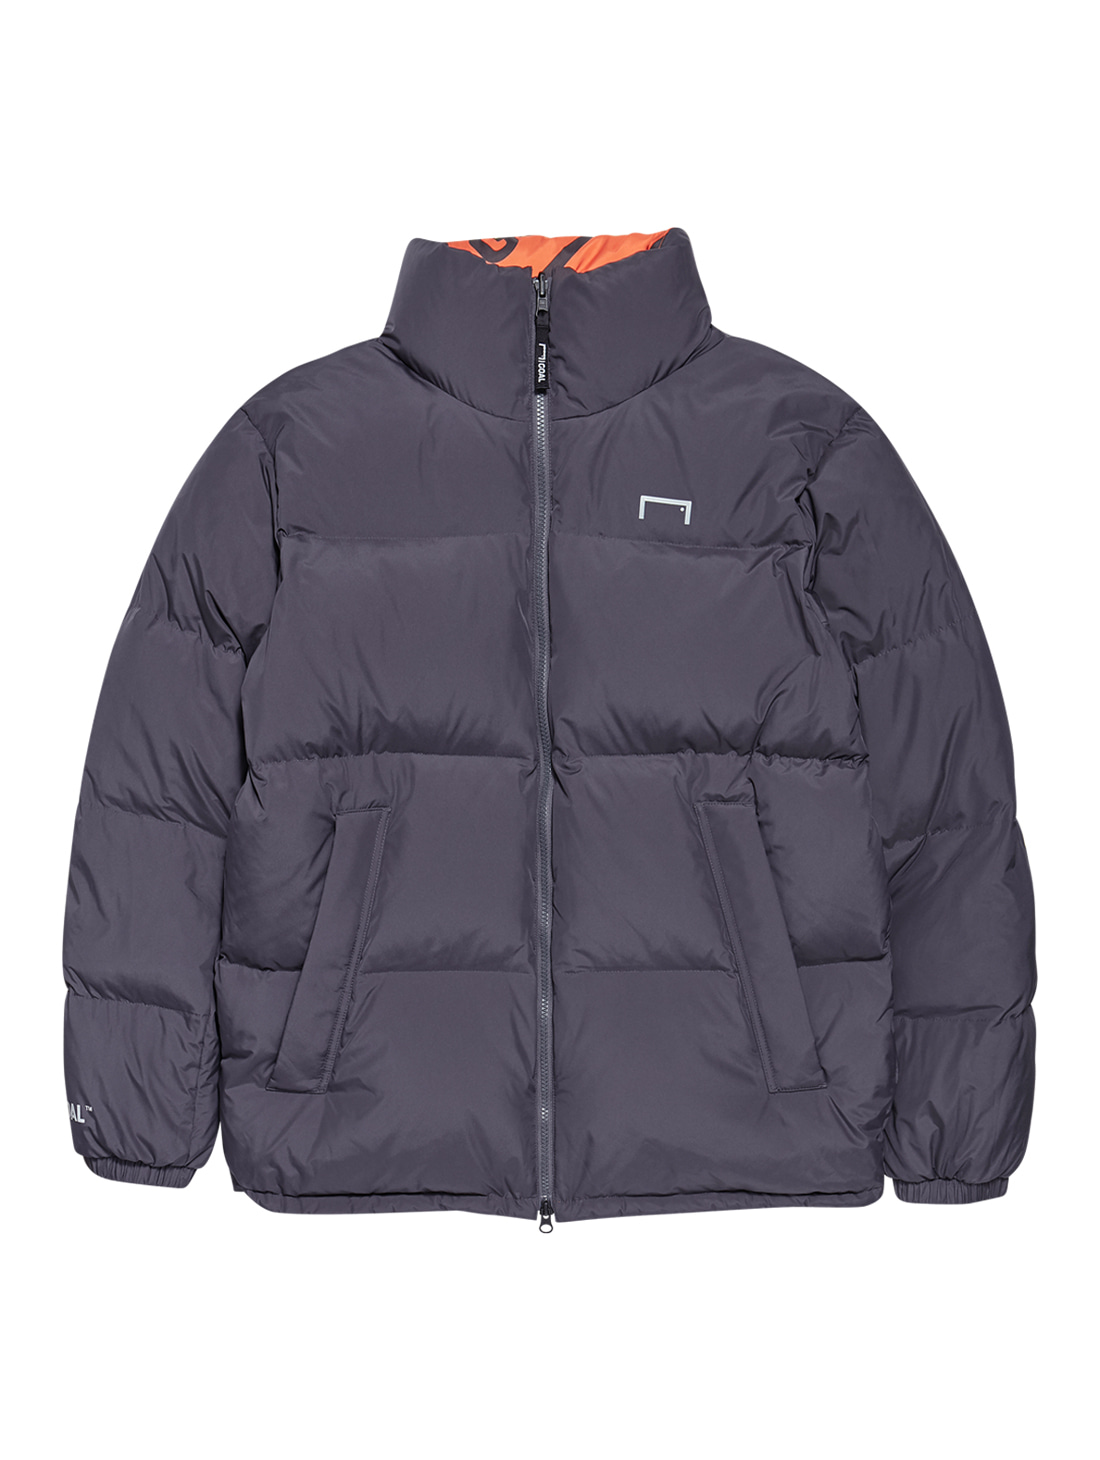 REVERSIBLE DOWN PARKA - GRAY/ORANGE [SPECIAL GIFT]